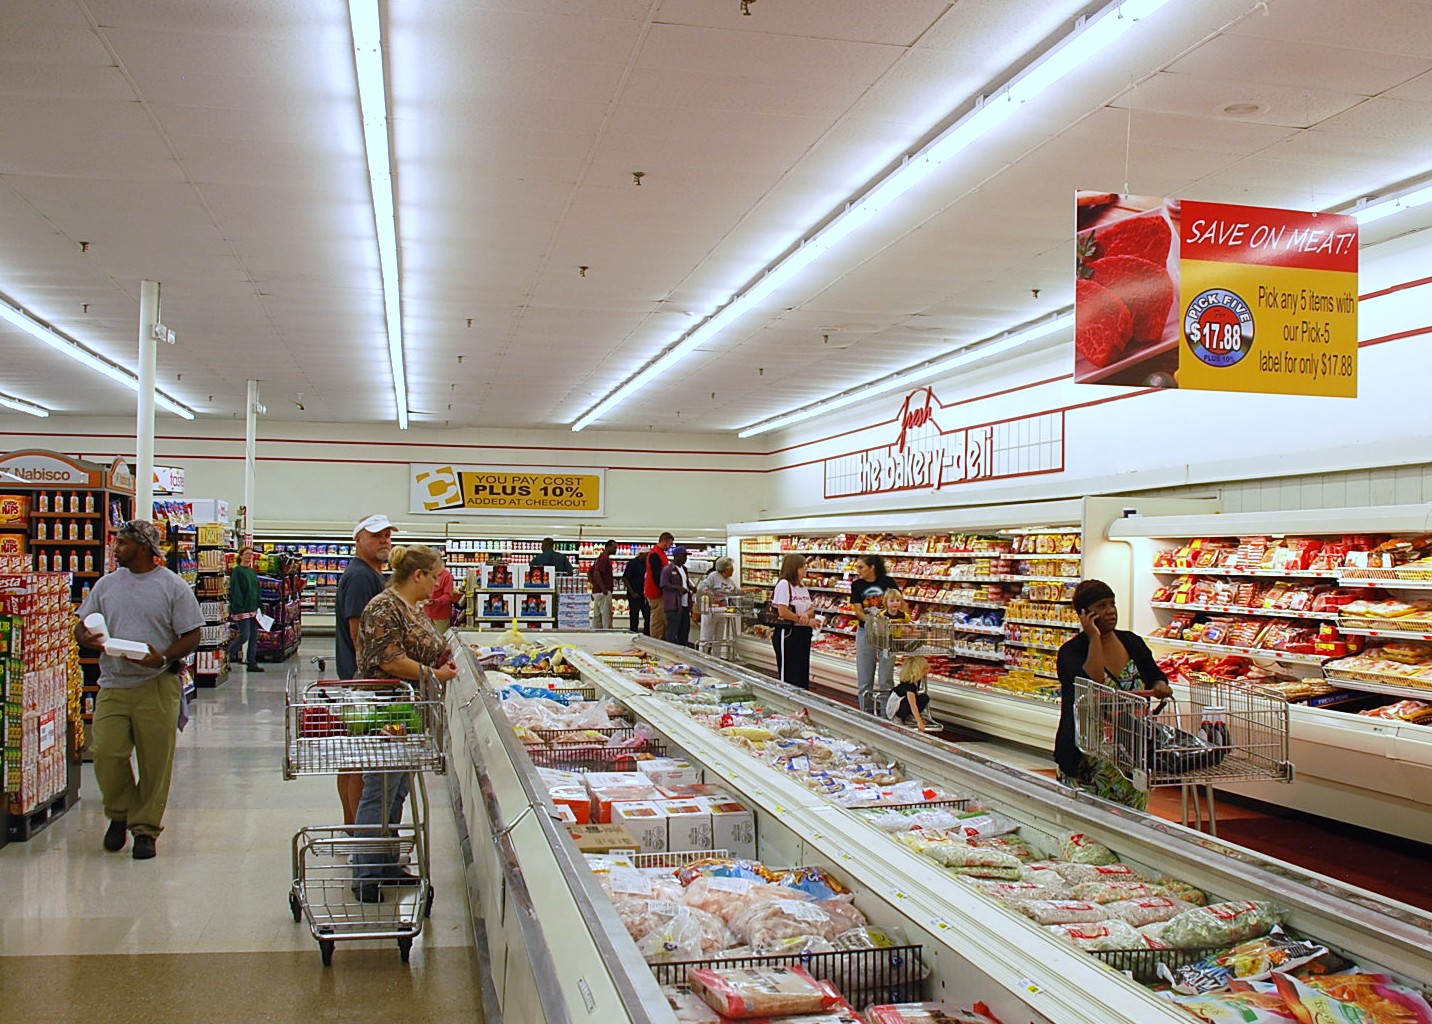 News articles new grocery now open in louisville for What grocery stores are open today